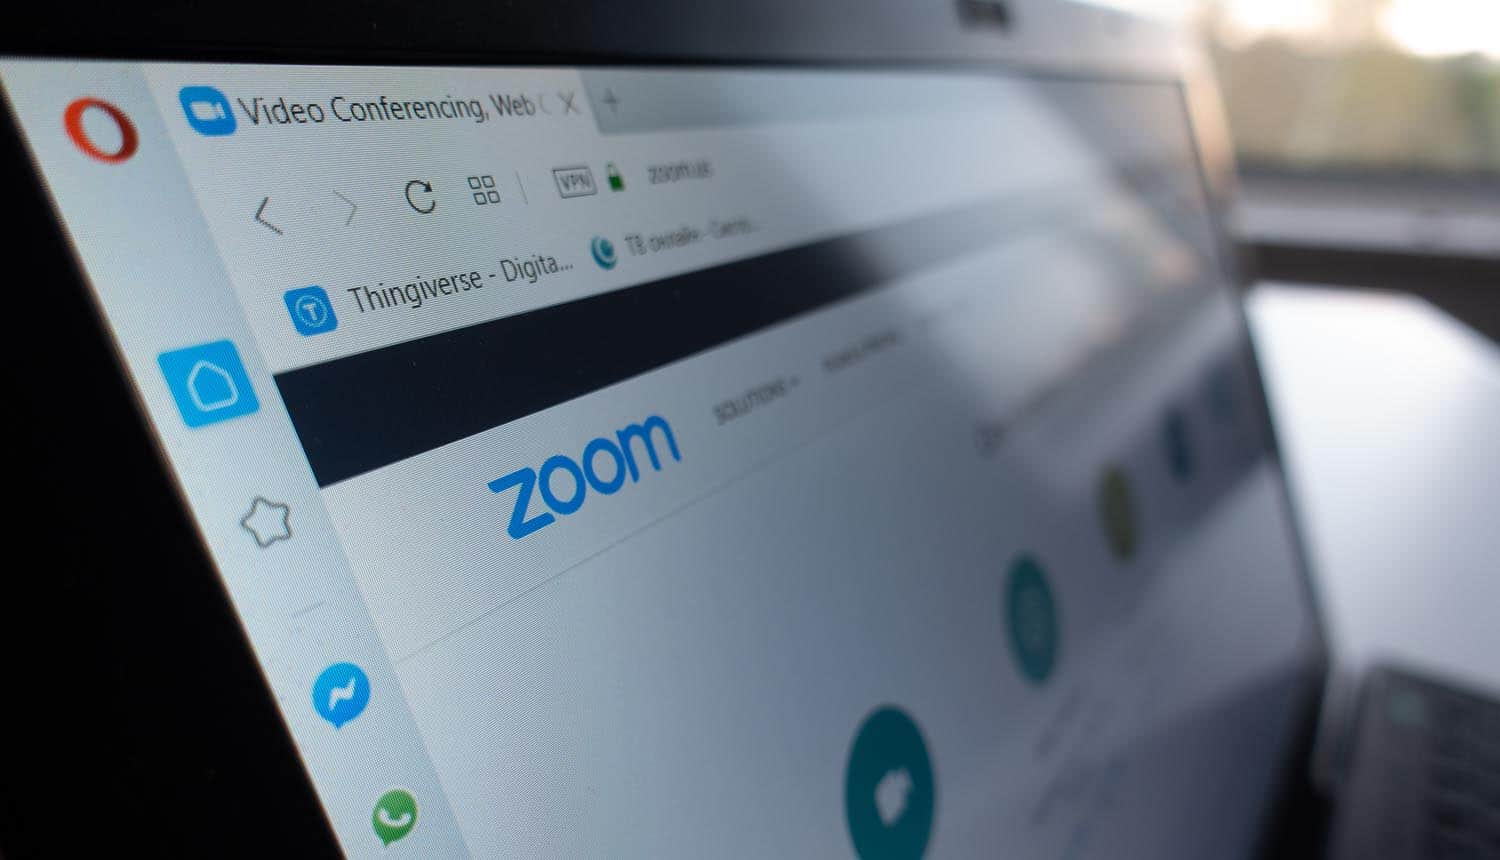 Zoom website showing FTC enforcement on security practices